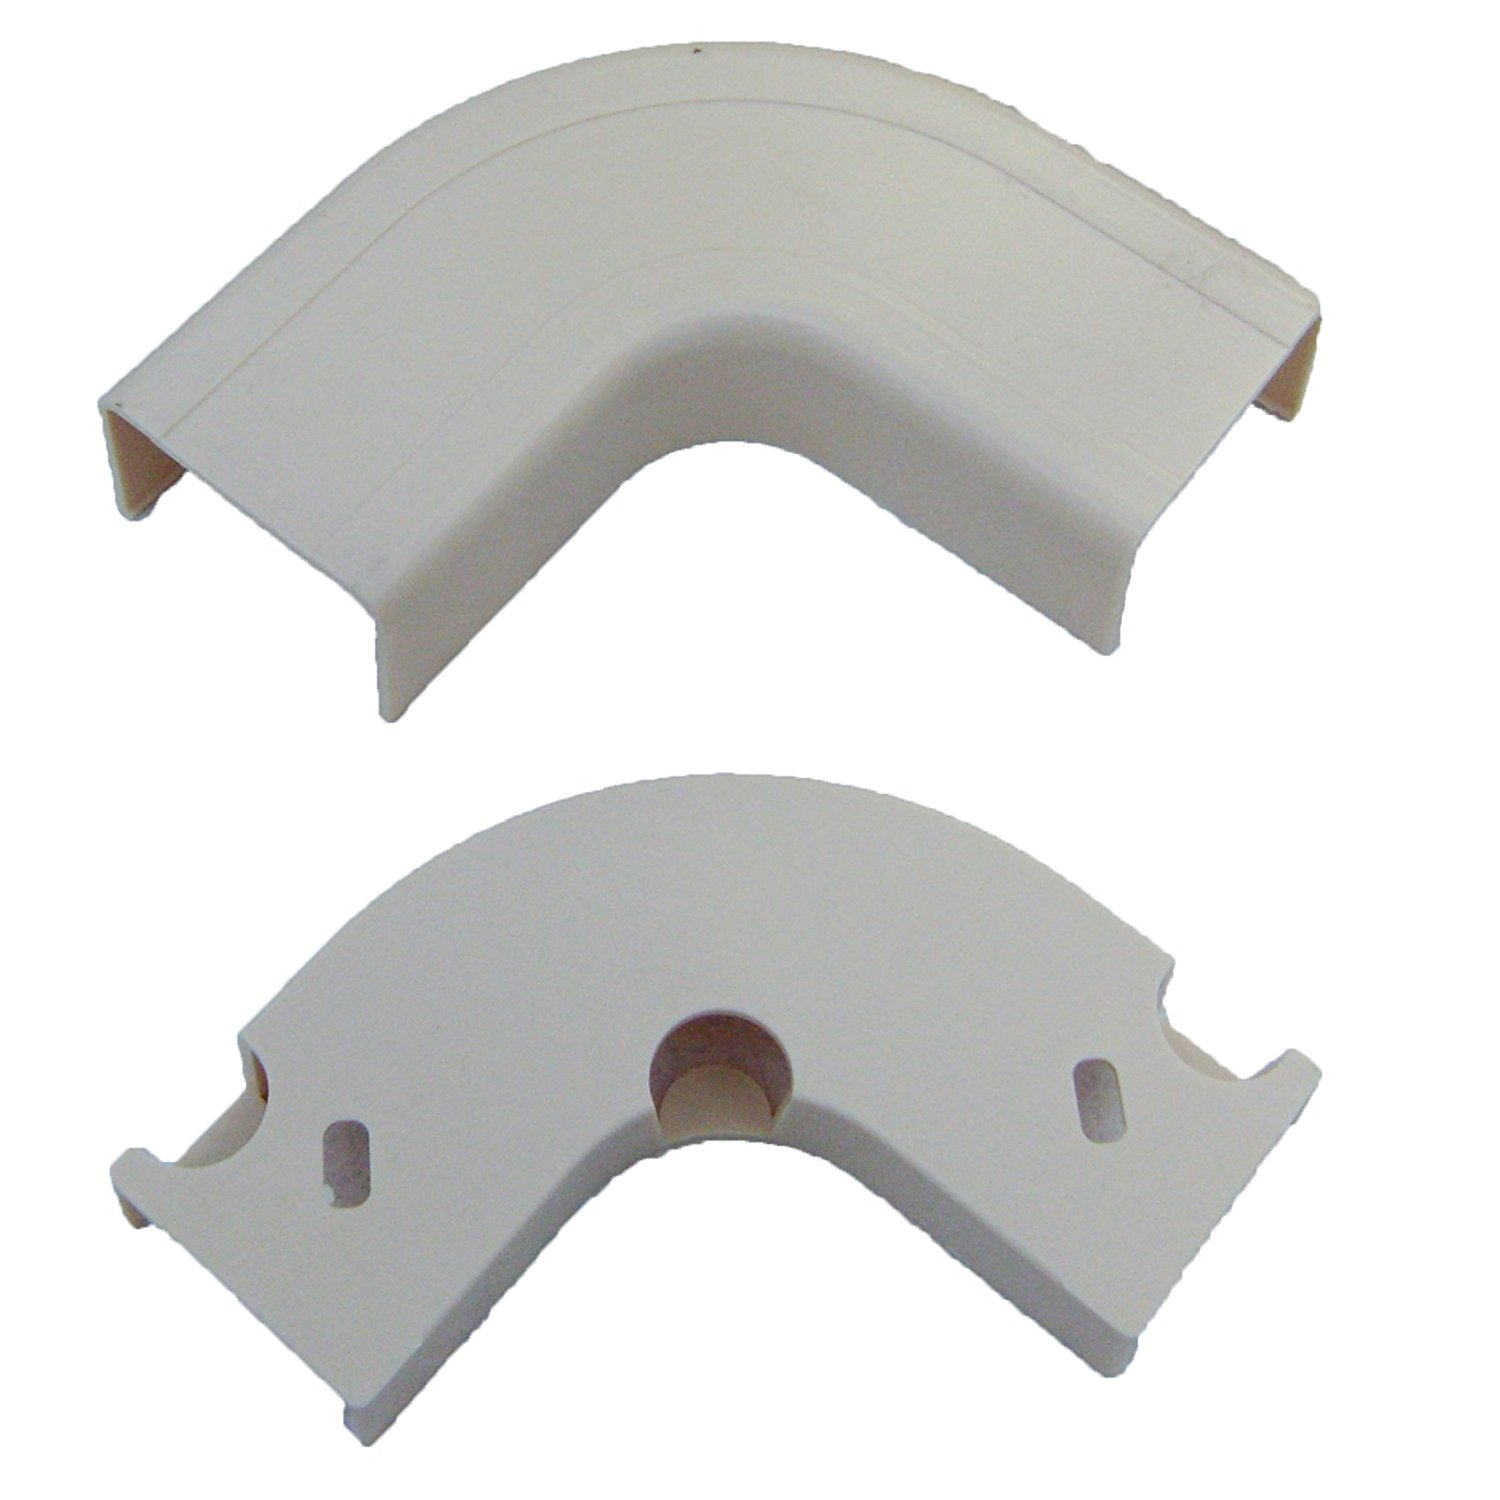 1.25 inch Surface Mount Cable Raceway, White, Flat 90 Degree Elbow